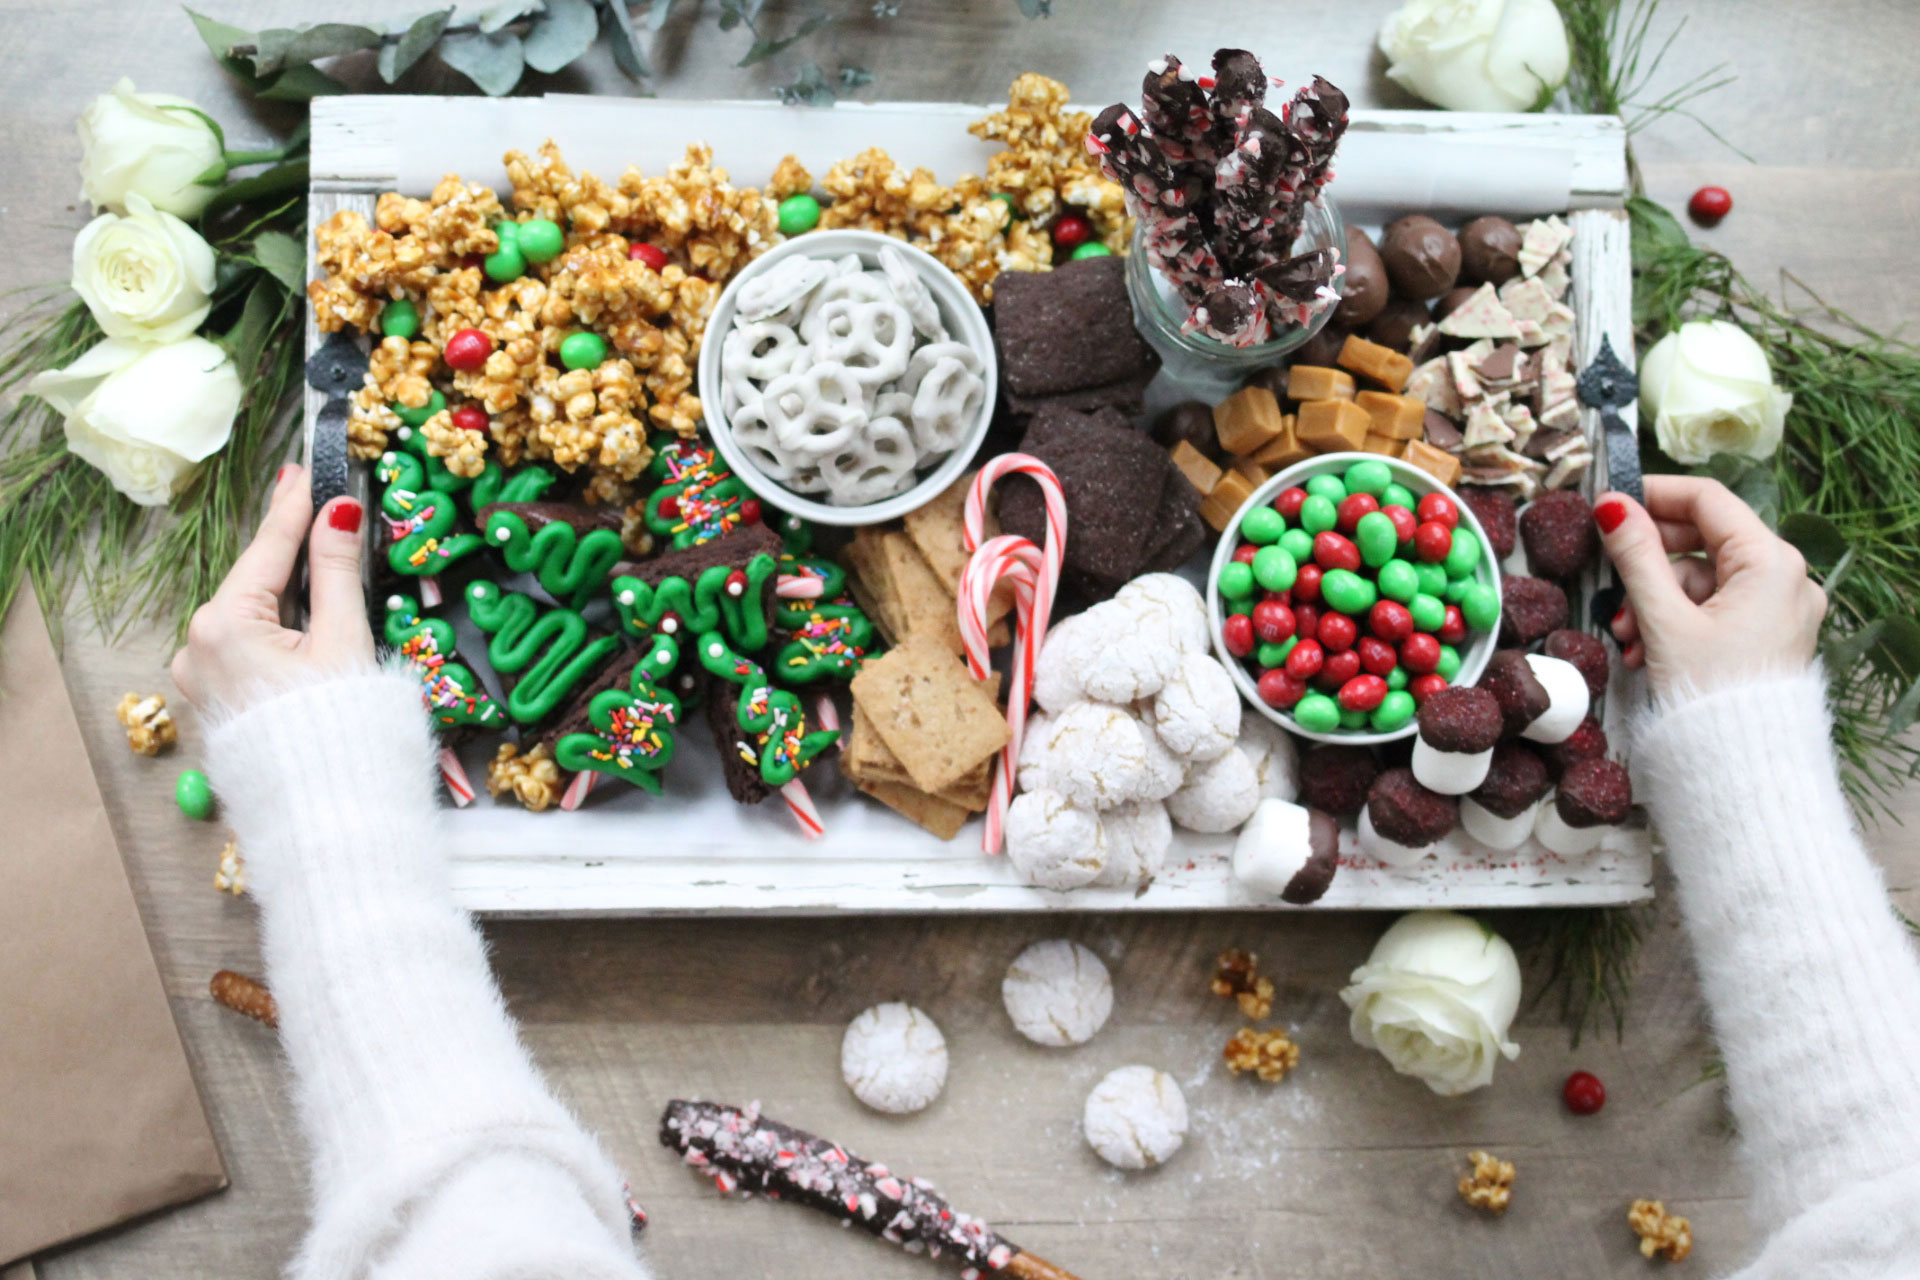 epic holiday dessert charcuterie snack board